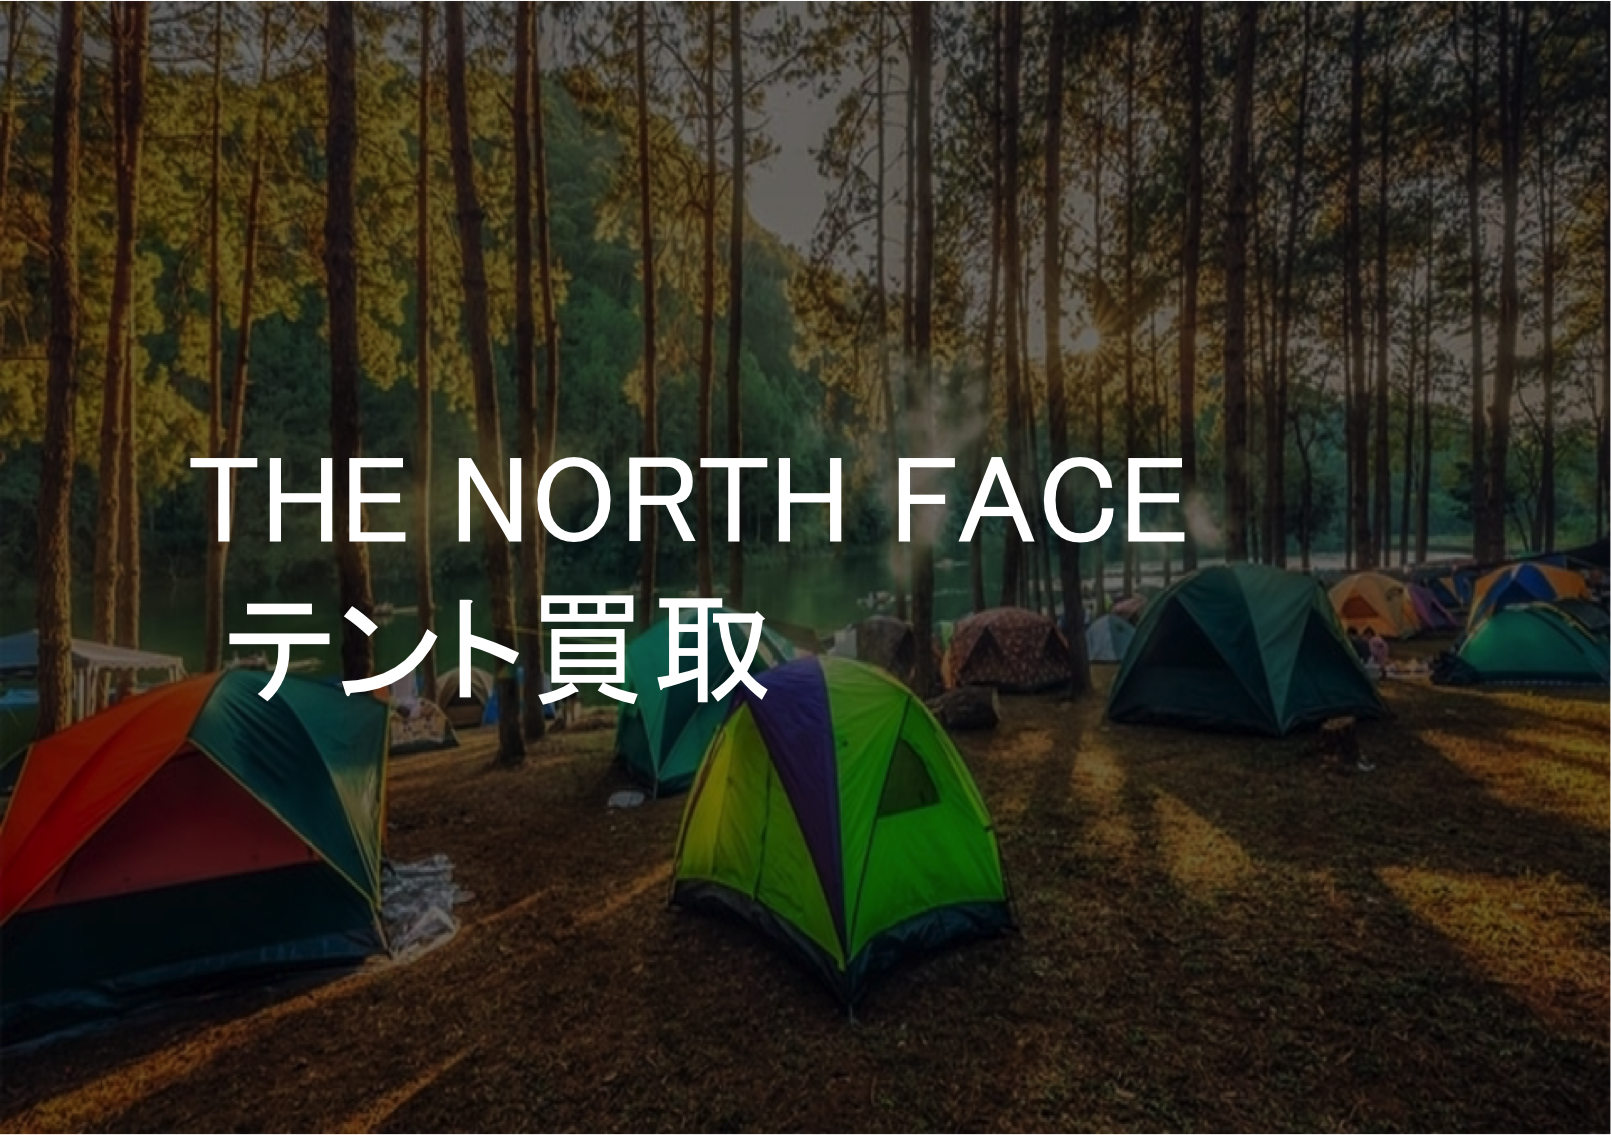 THE NORTH FACE テント買取なら